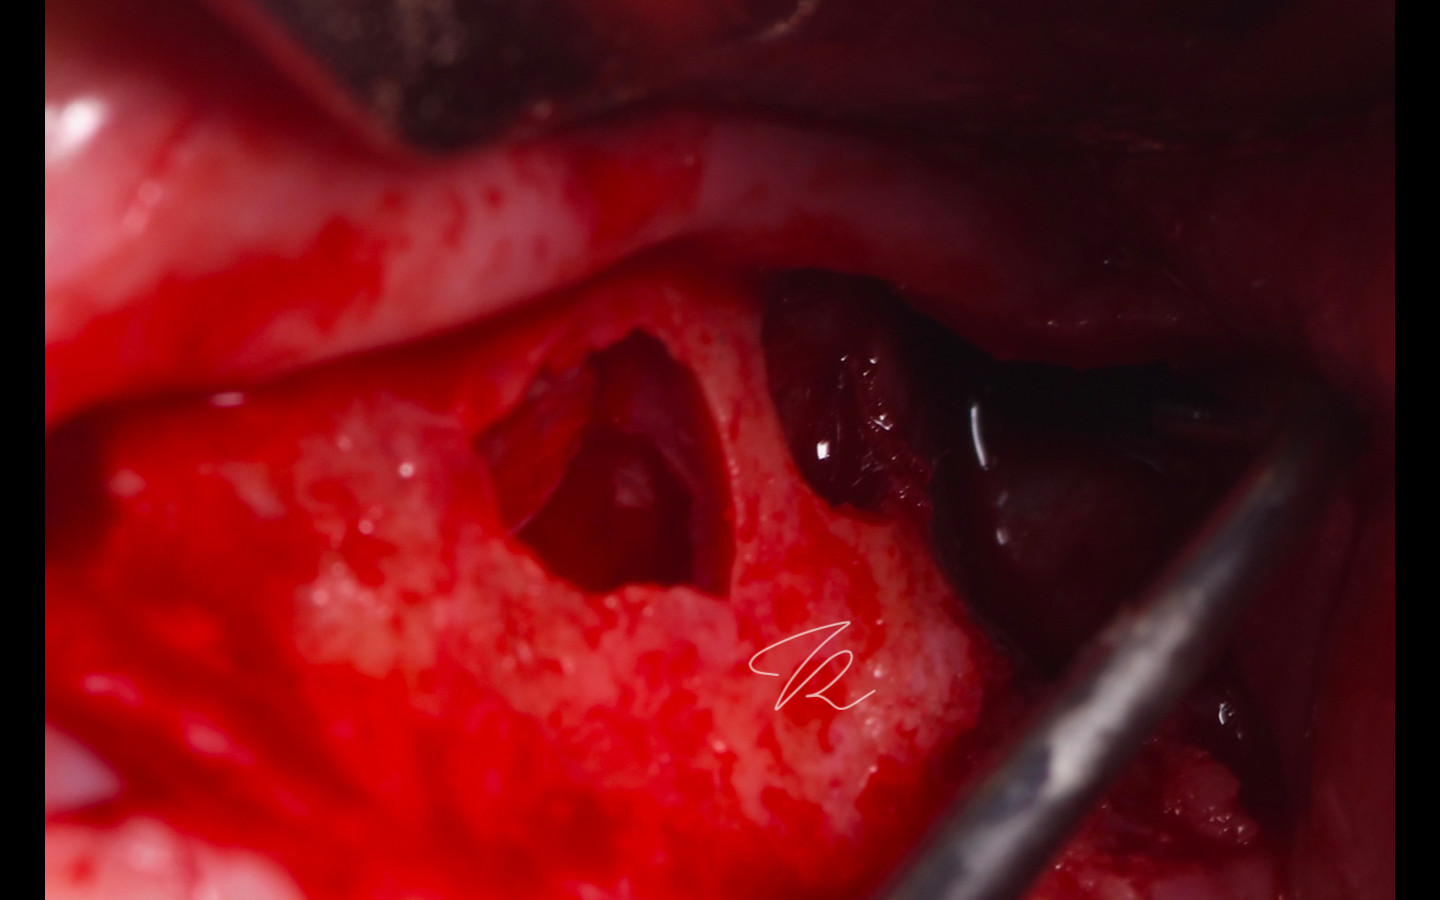 Lateral sinus lift: double window design due to septa